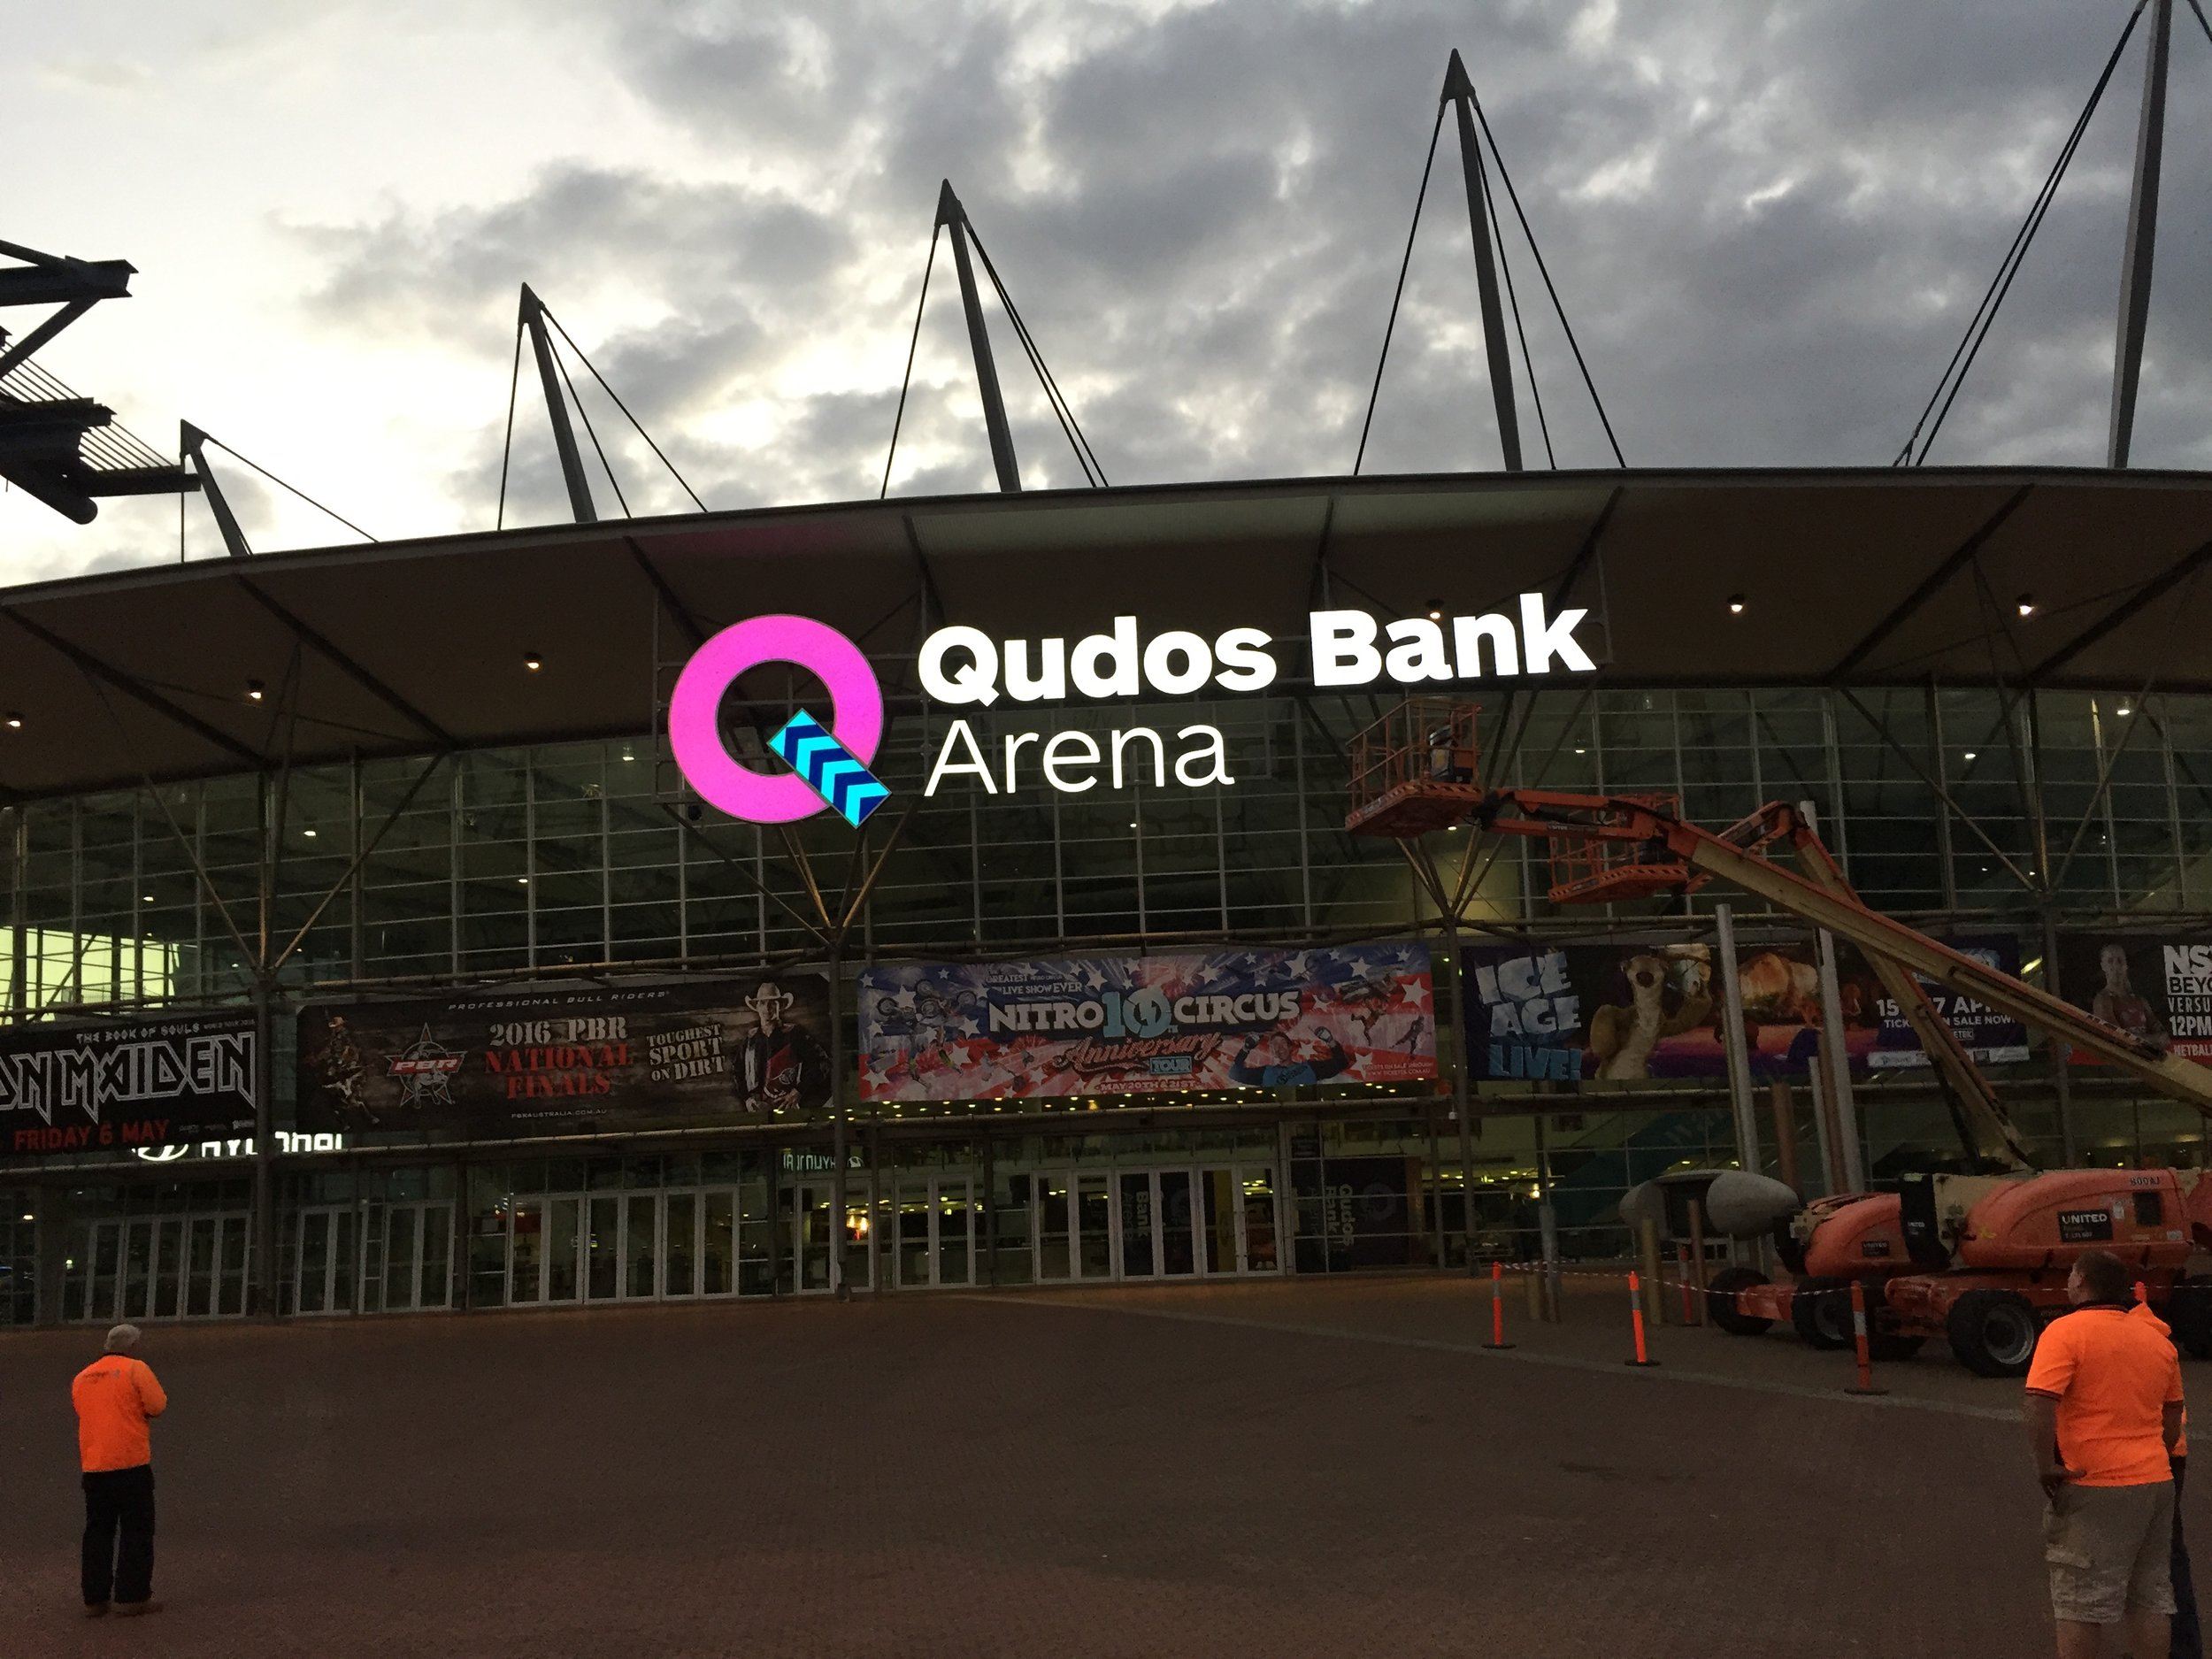 Bentleigh Group signs Qudos bank arena large signs illuminated letters signs installation night works